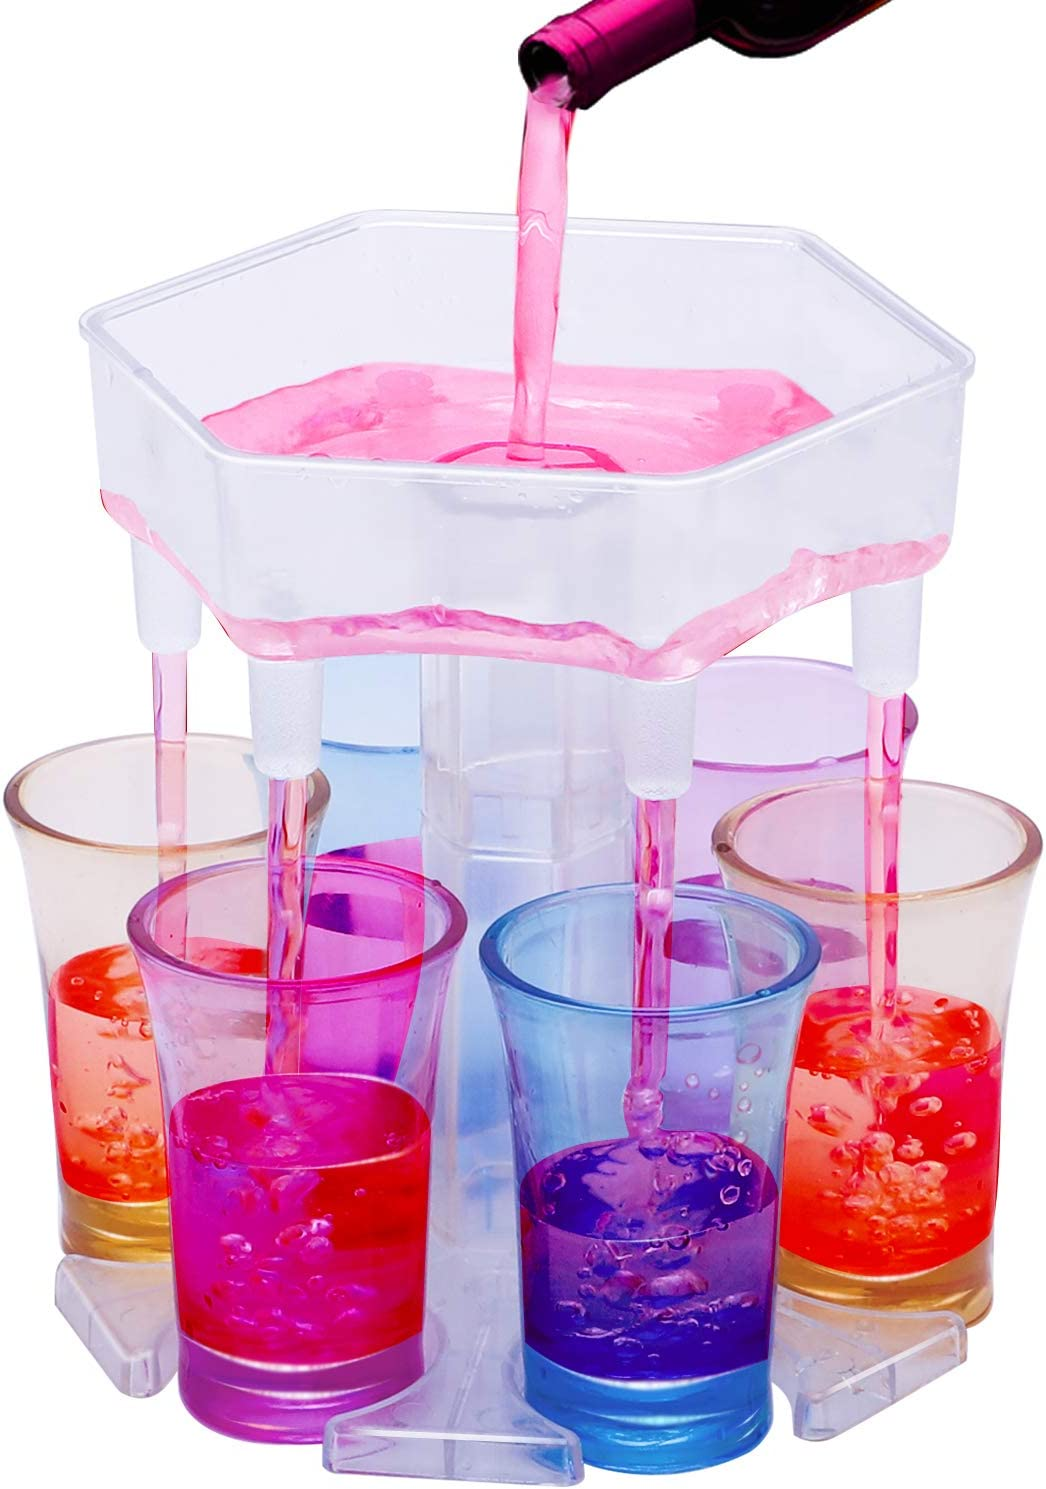 Generic 6 Shot Glass Dispenser and Holder, Bar Shot Dispenser, Carrier Caddy Liquor Dispenser,Cocktail Dispenser Great Party Gift, Get Party Started Faster, Glasses and Silicone Plug Included -Clear